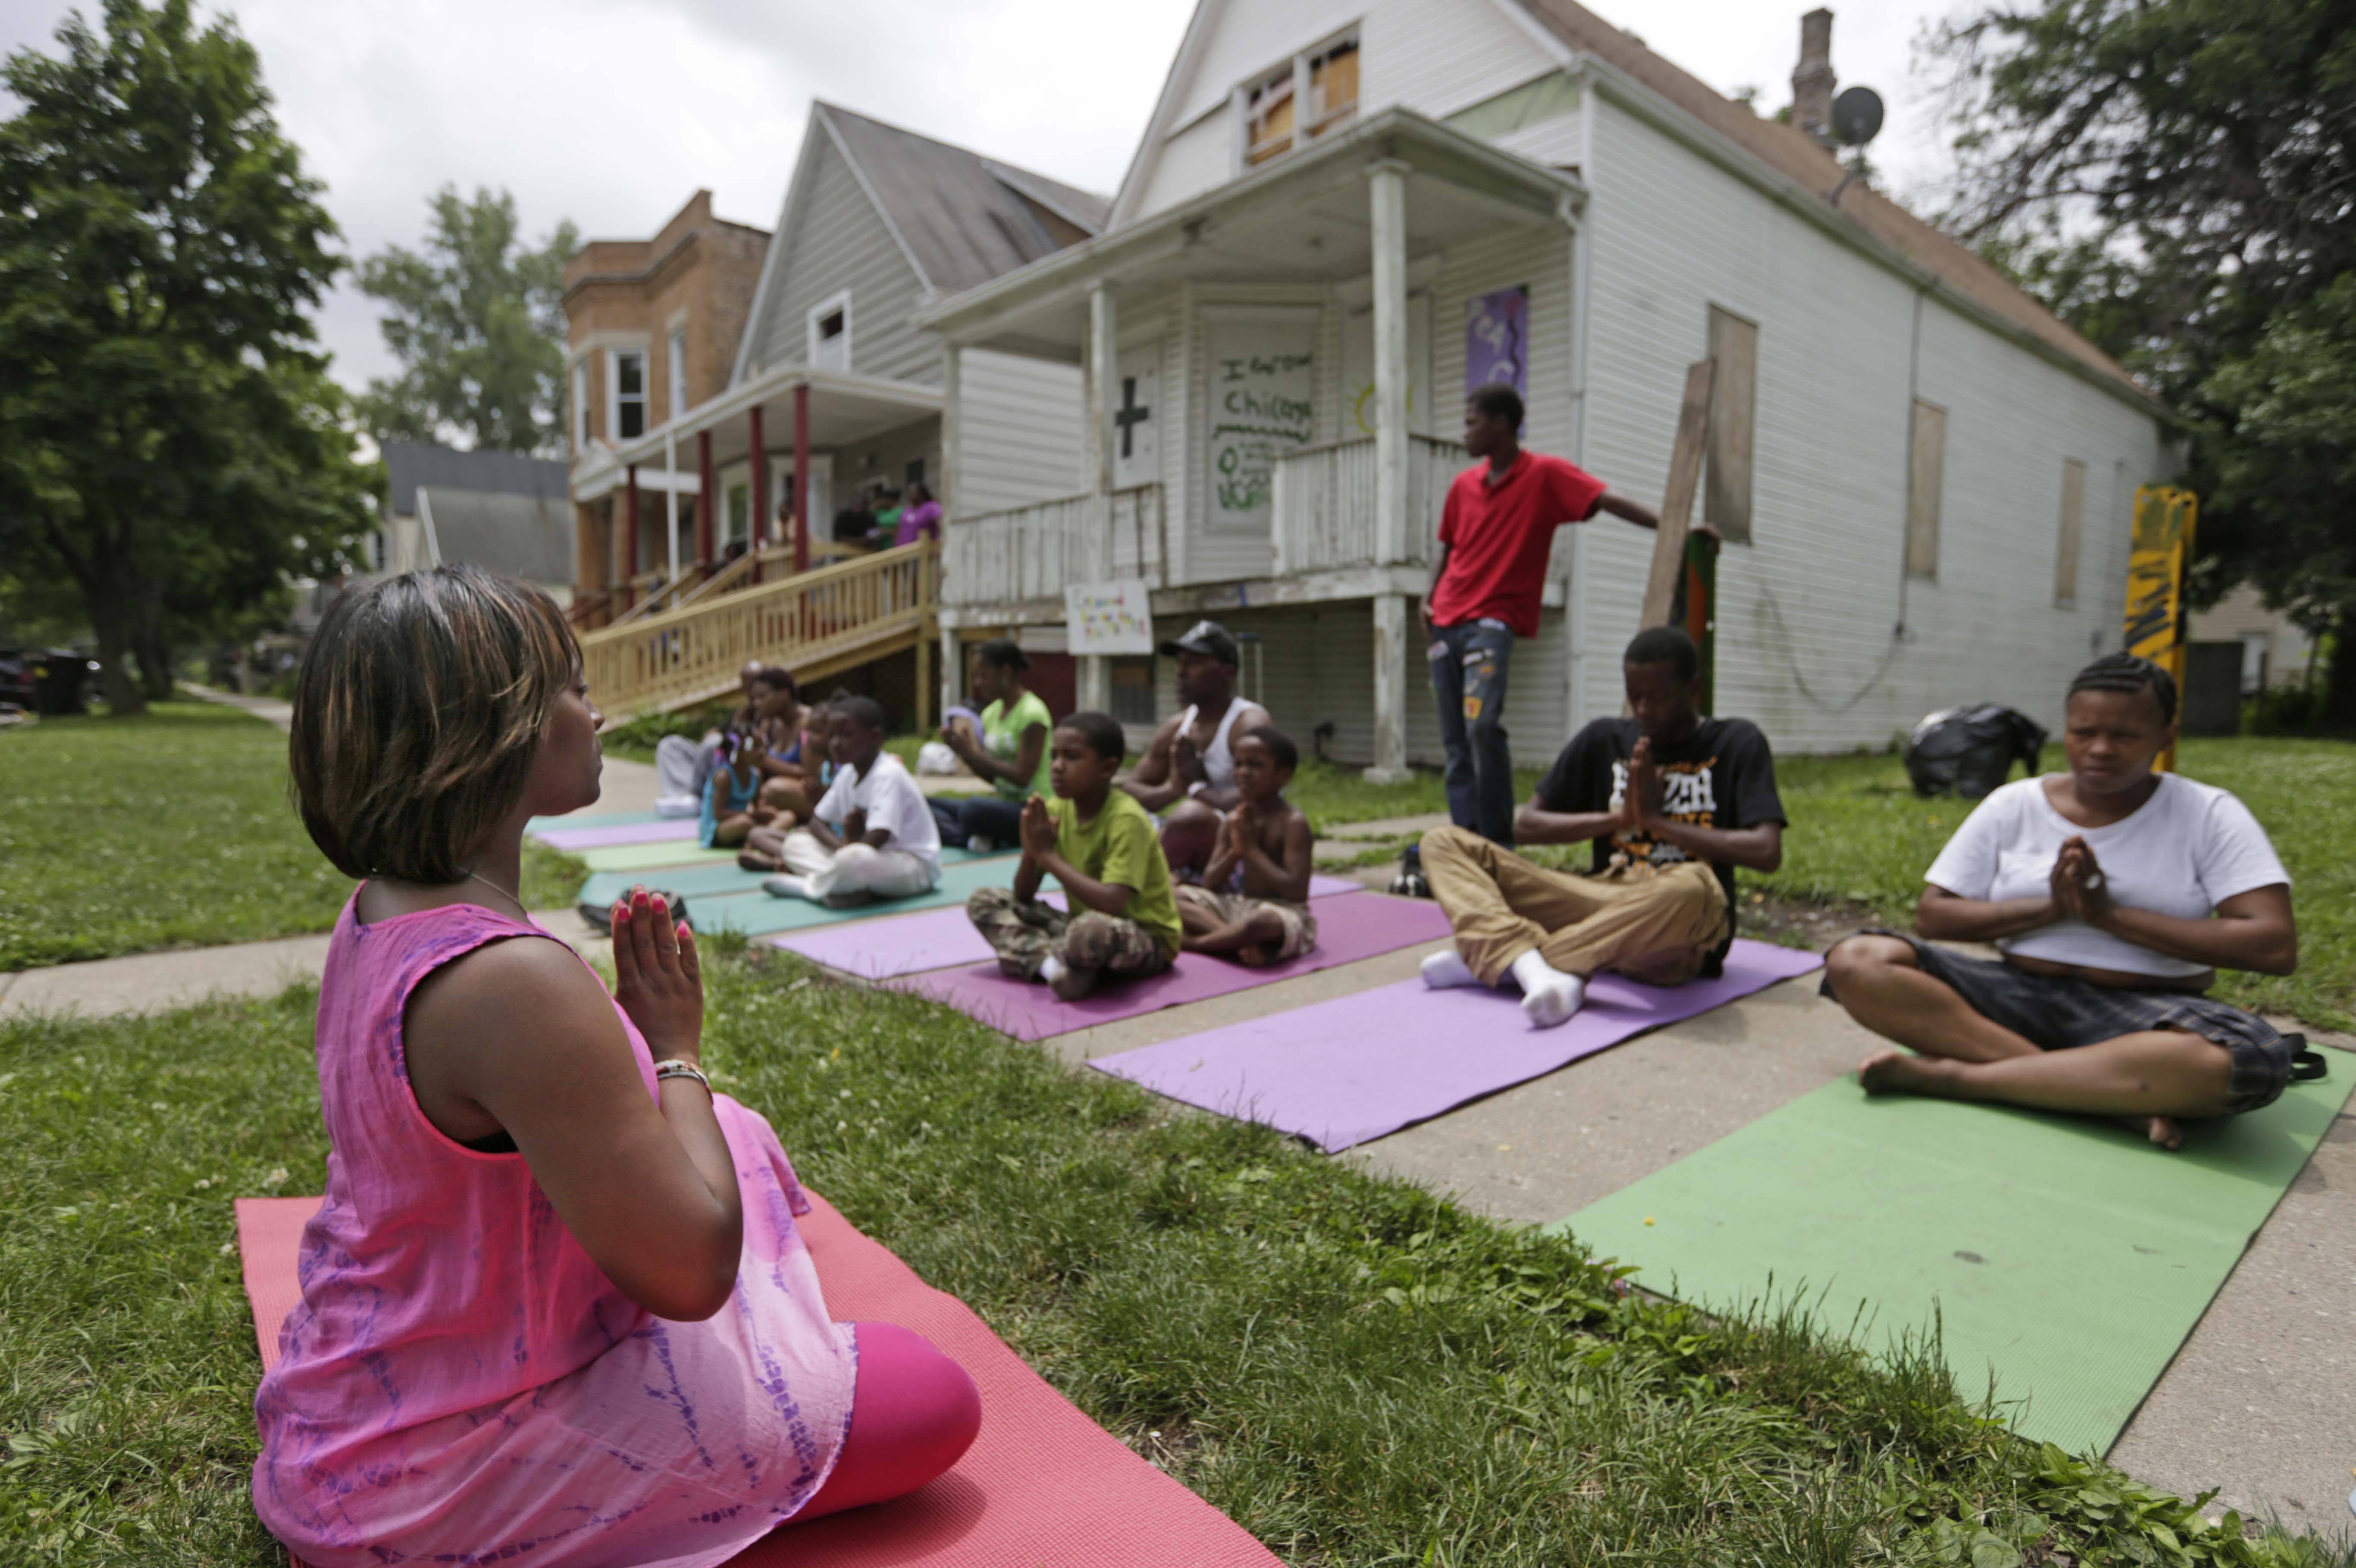 Tameka Lawson, executive director of a local non-profit group called 'I Grow Chicago' leads a yoga class along the often violent streets of Chicago's Englewood neighborhood. Lawson said yoga's meditative focus could help cooler heads prevail the next time violence or vengeance looms.